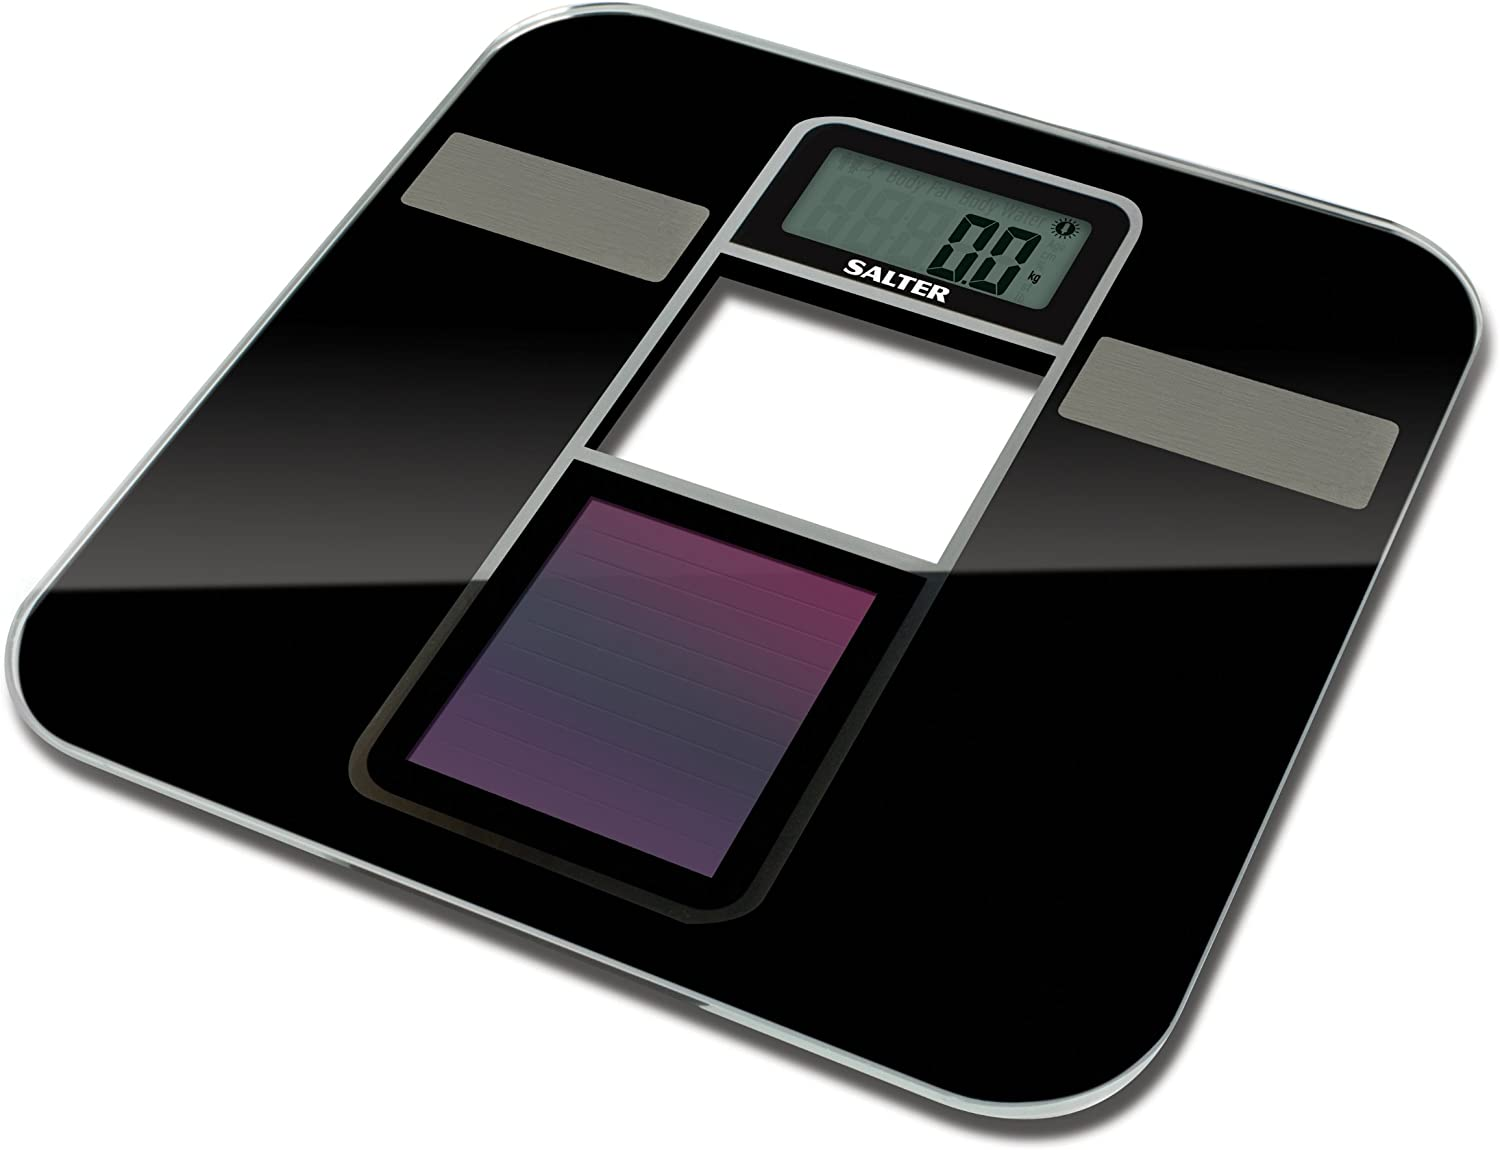 Salter StowAWeigh 9147 Body Analyser Home Bathroom Weight Measurement Scale NEW